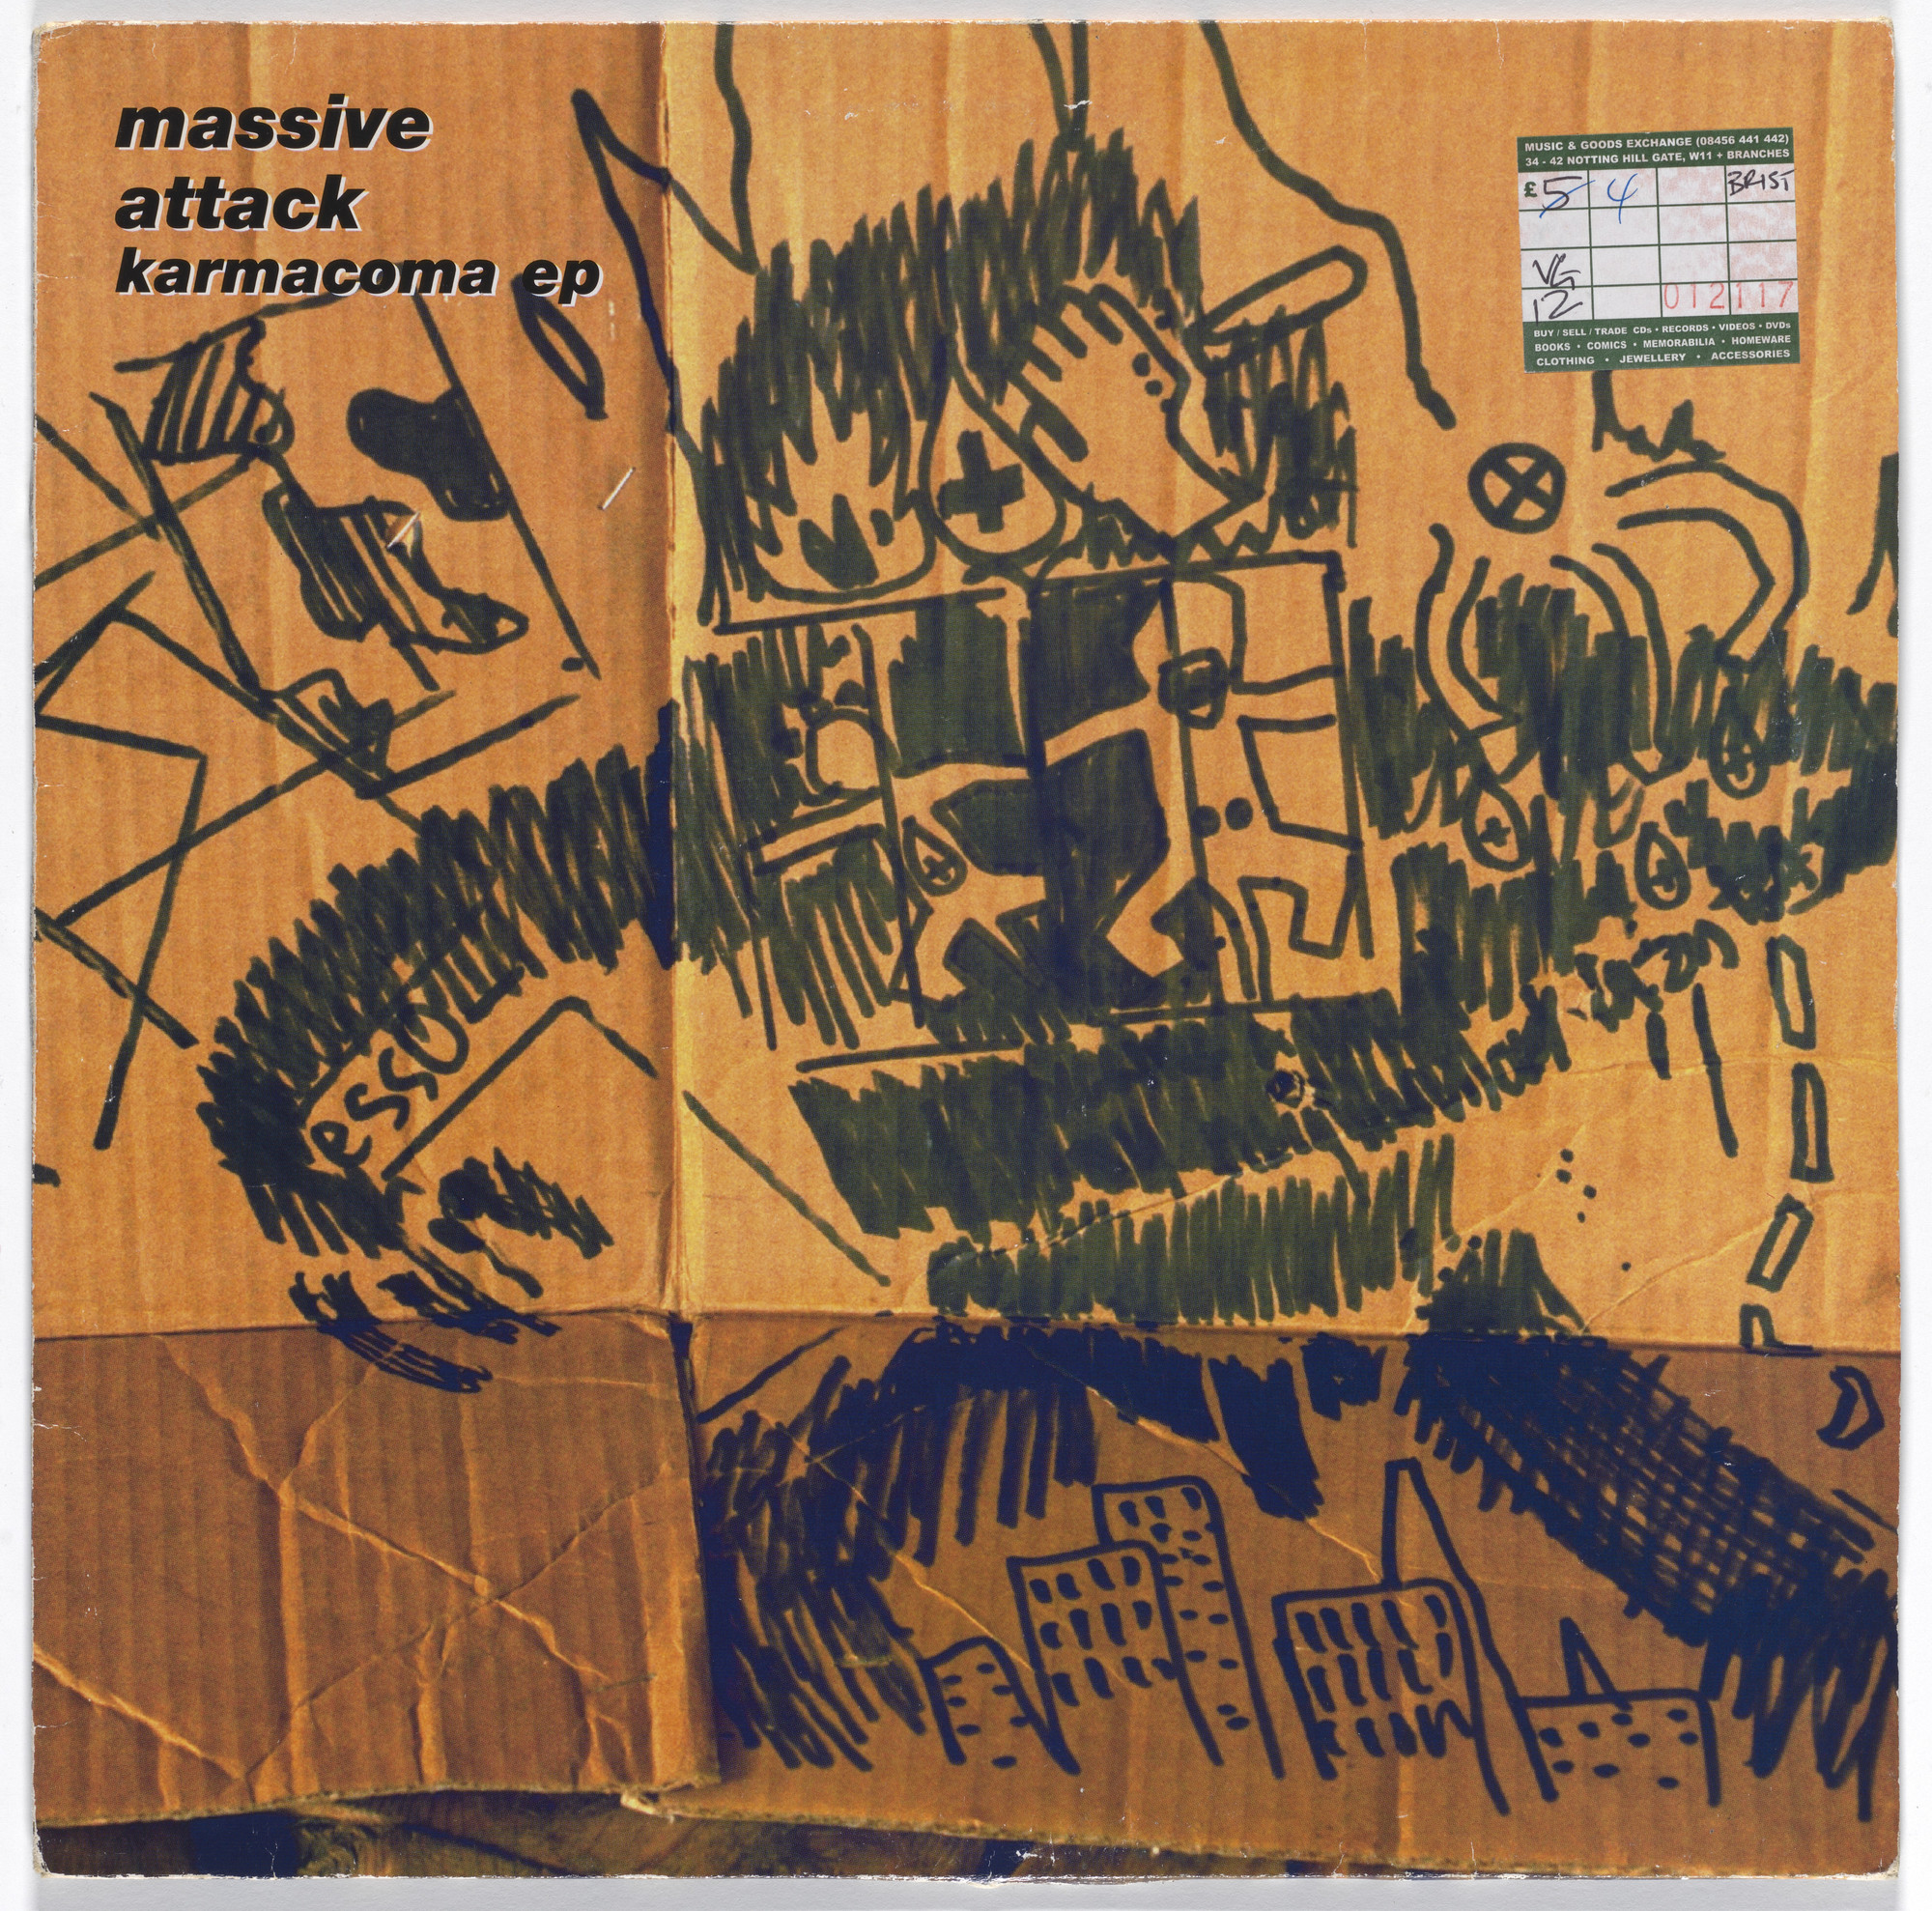 "Robert del Naja. Cover for Massive Attack 12"" single ""Karmacoma"". 1995"